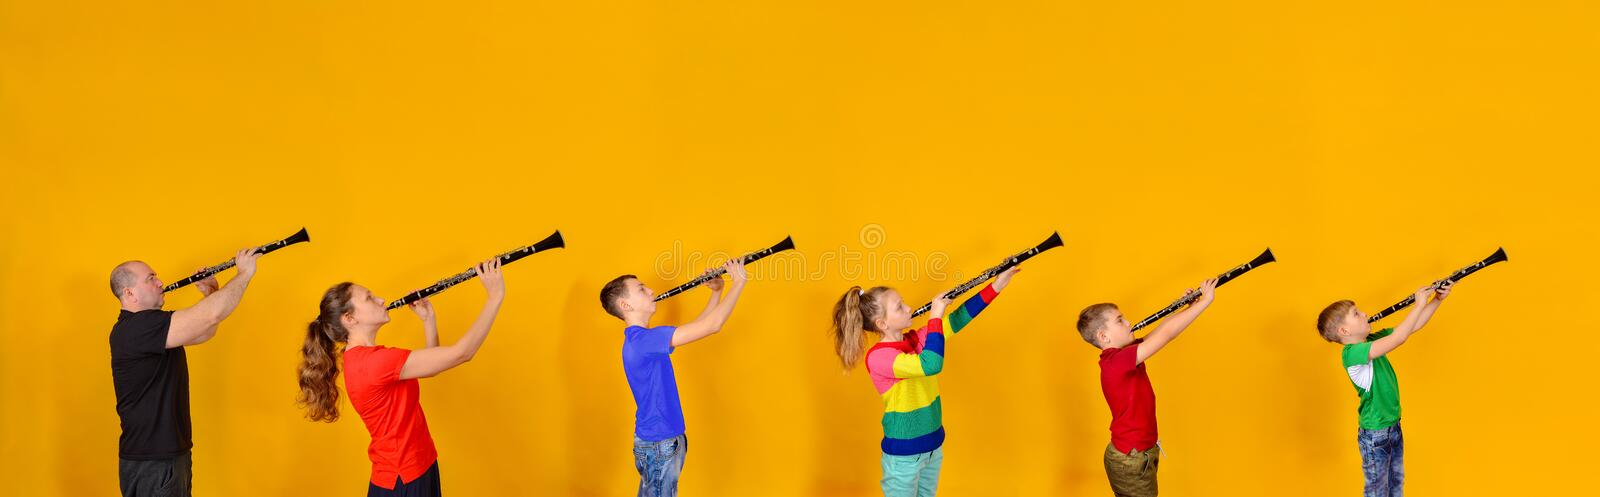 The family plays the clarinet. Father, mother and four children with clarinet on a yellow background. A wide-angle photo of six. People with musical themes royalty free stock images